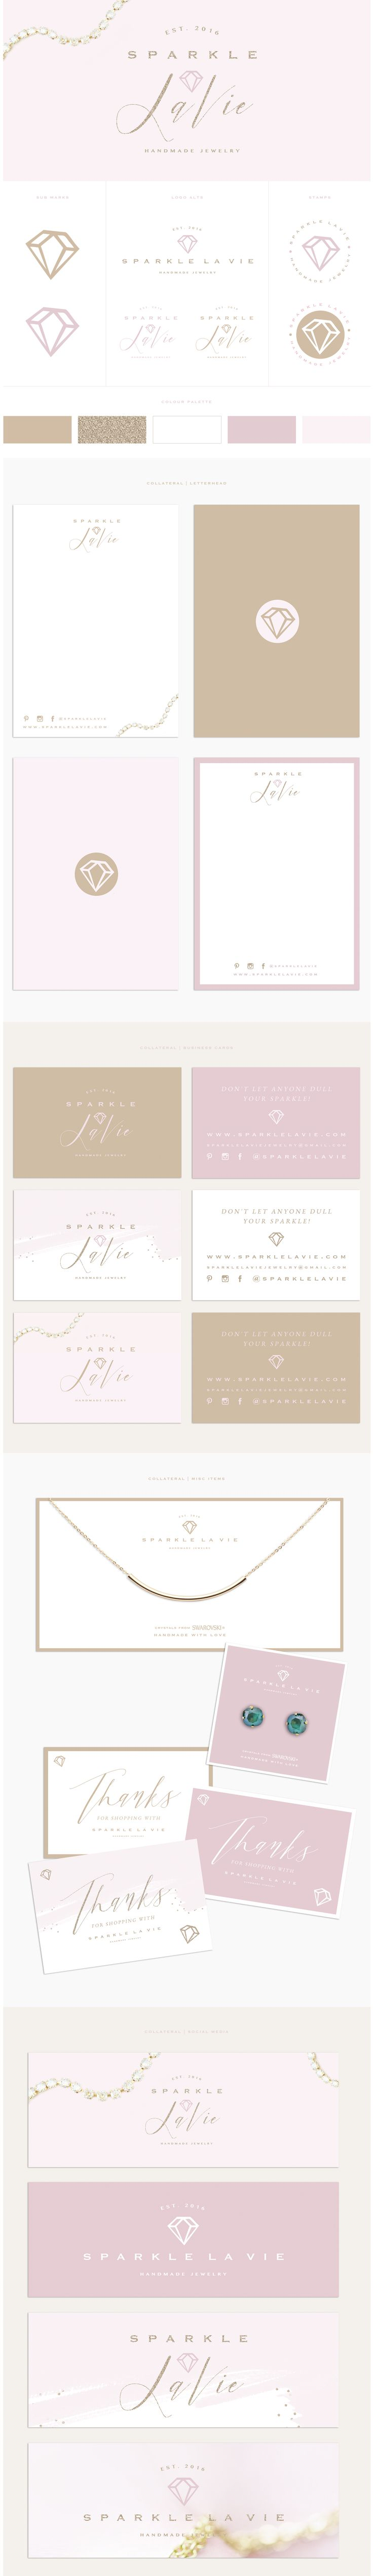 Brand Design for Sparkle La Vie by Brand Me Beautiful